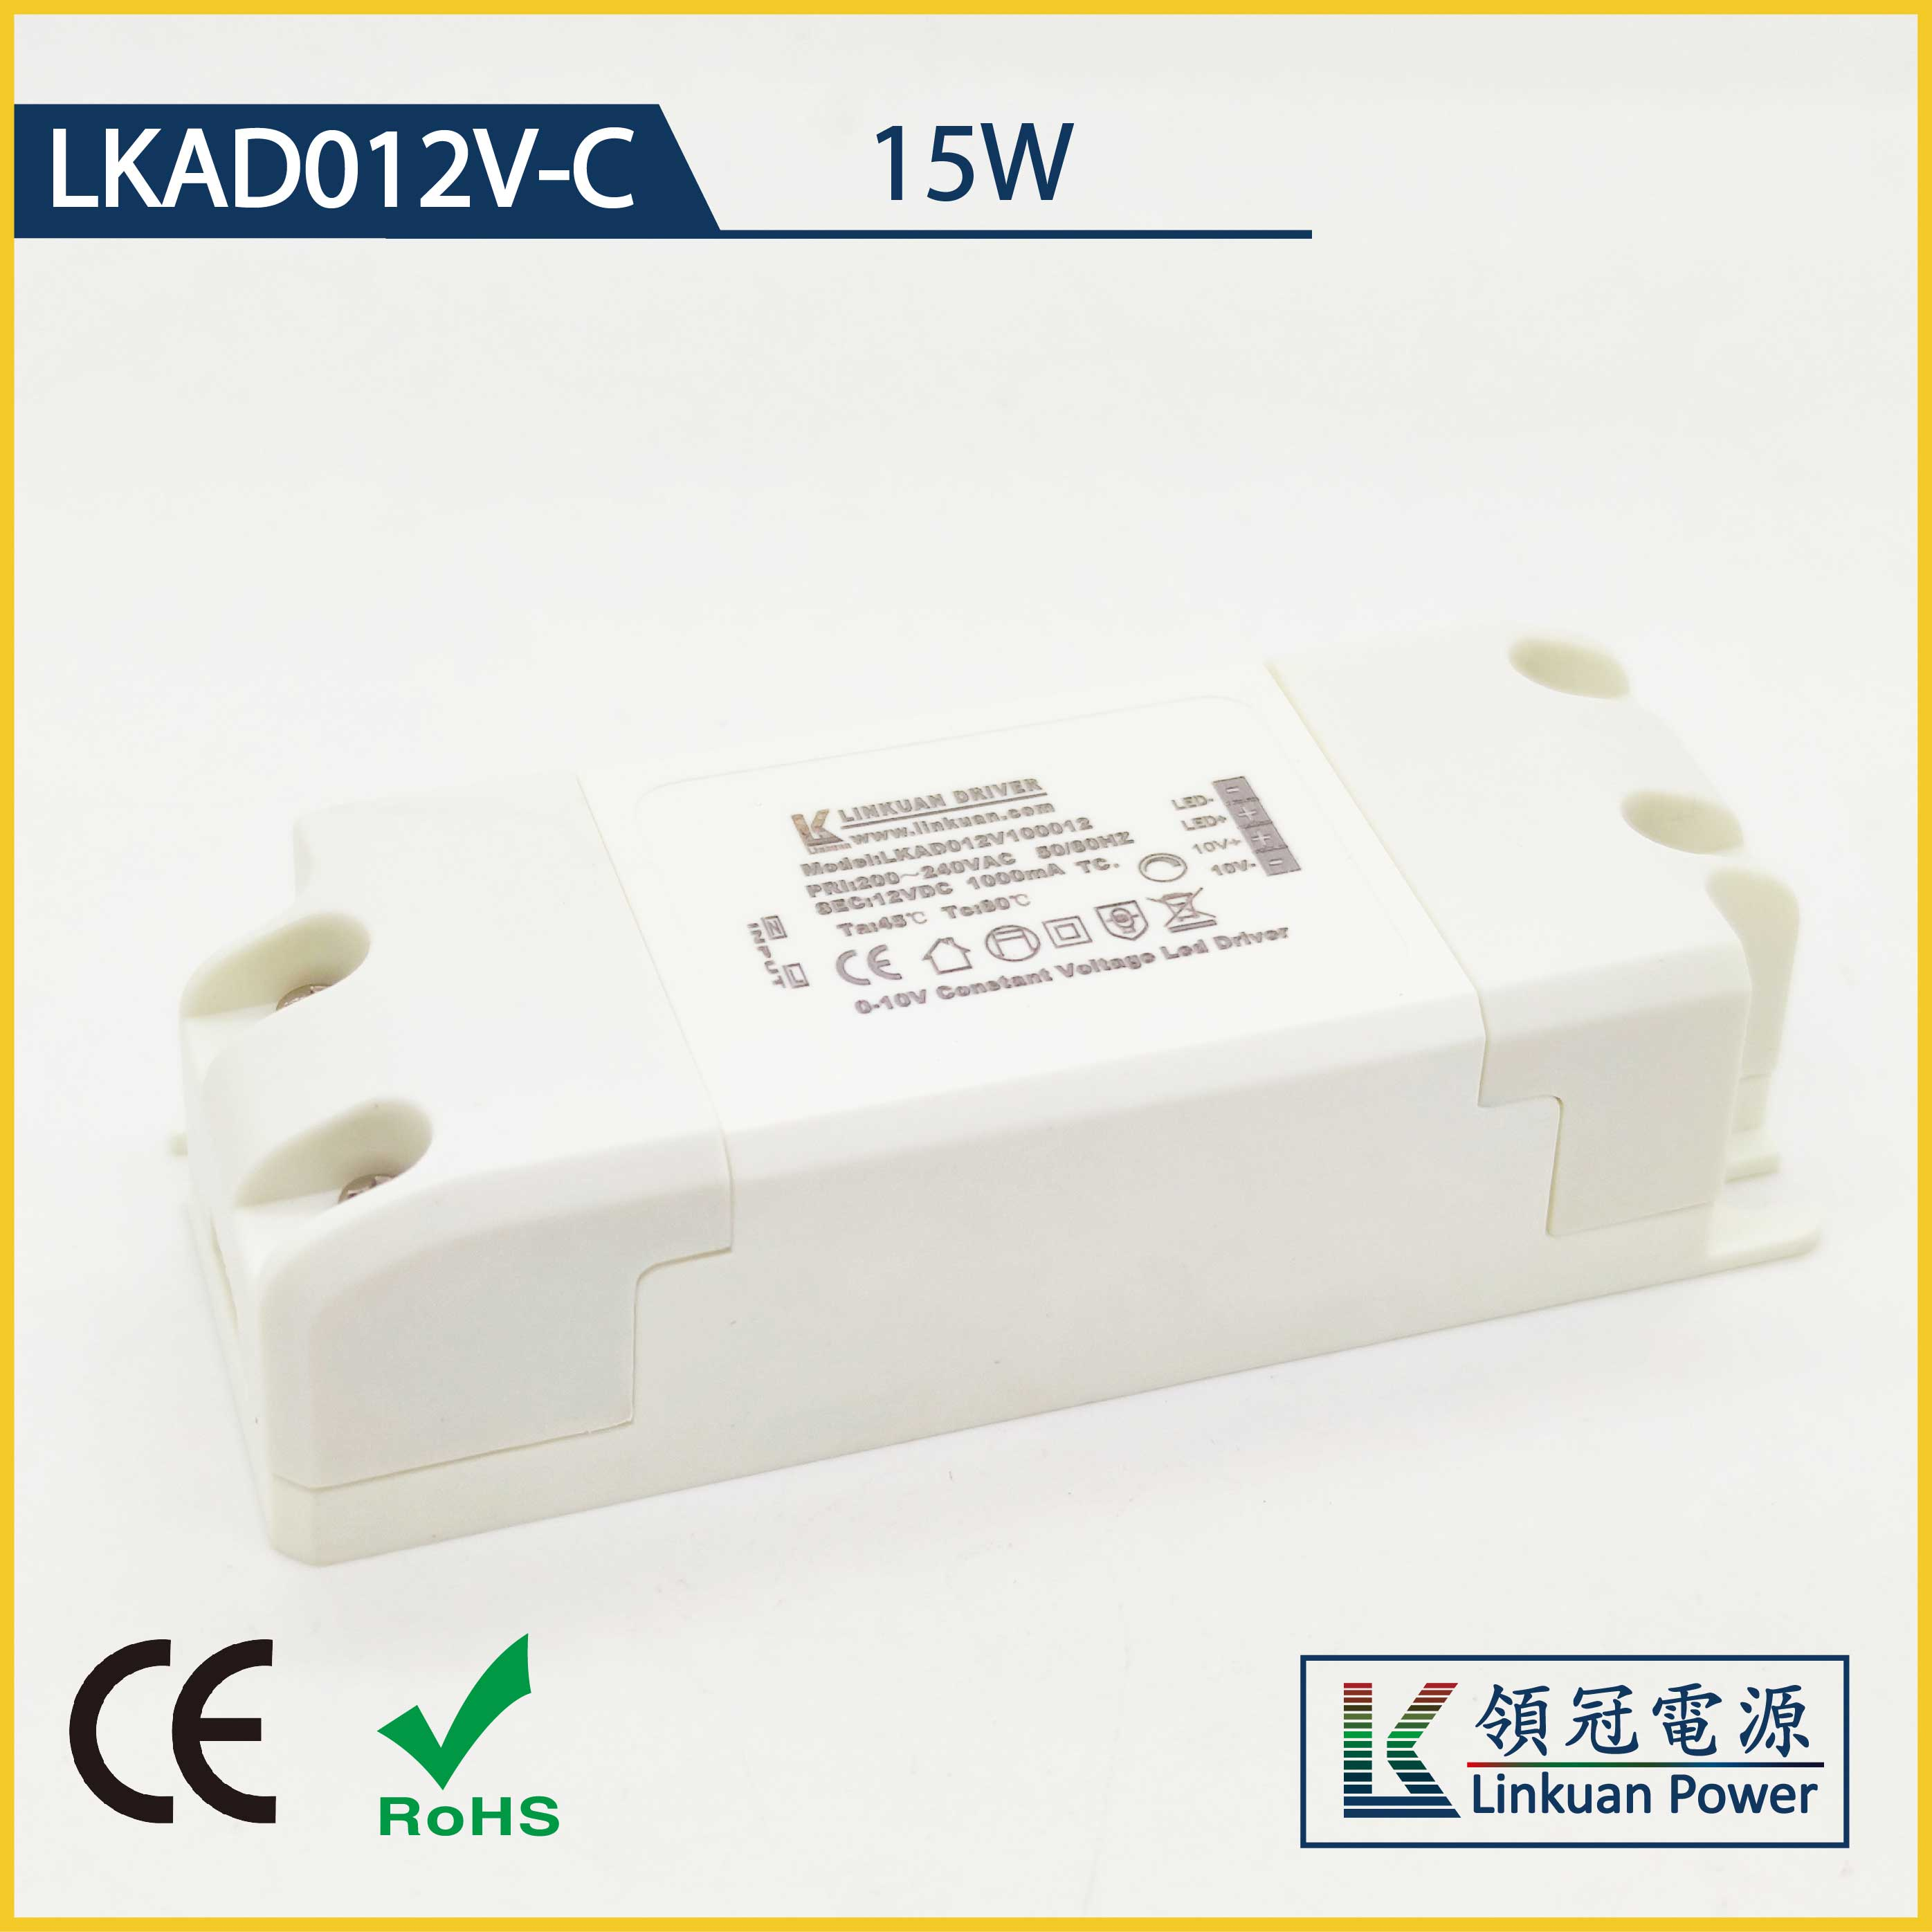 LKAD012V-C 15W 12/24V 1250/625mA 0-10V Dimming LED drivers